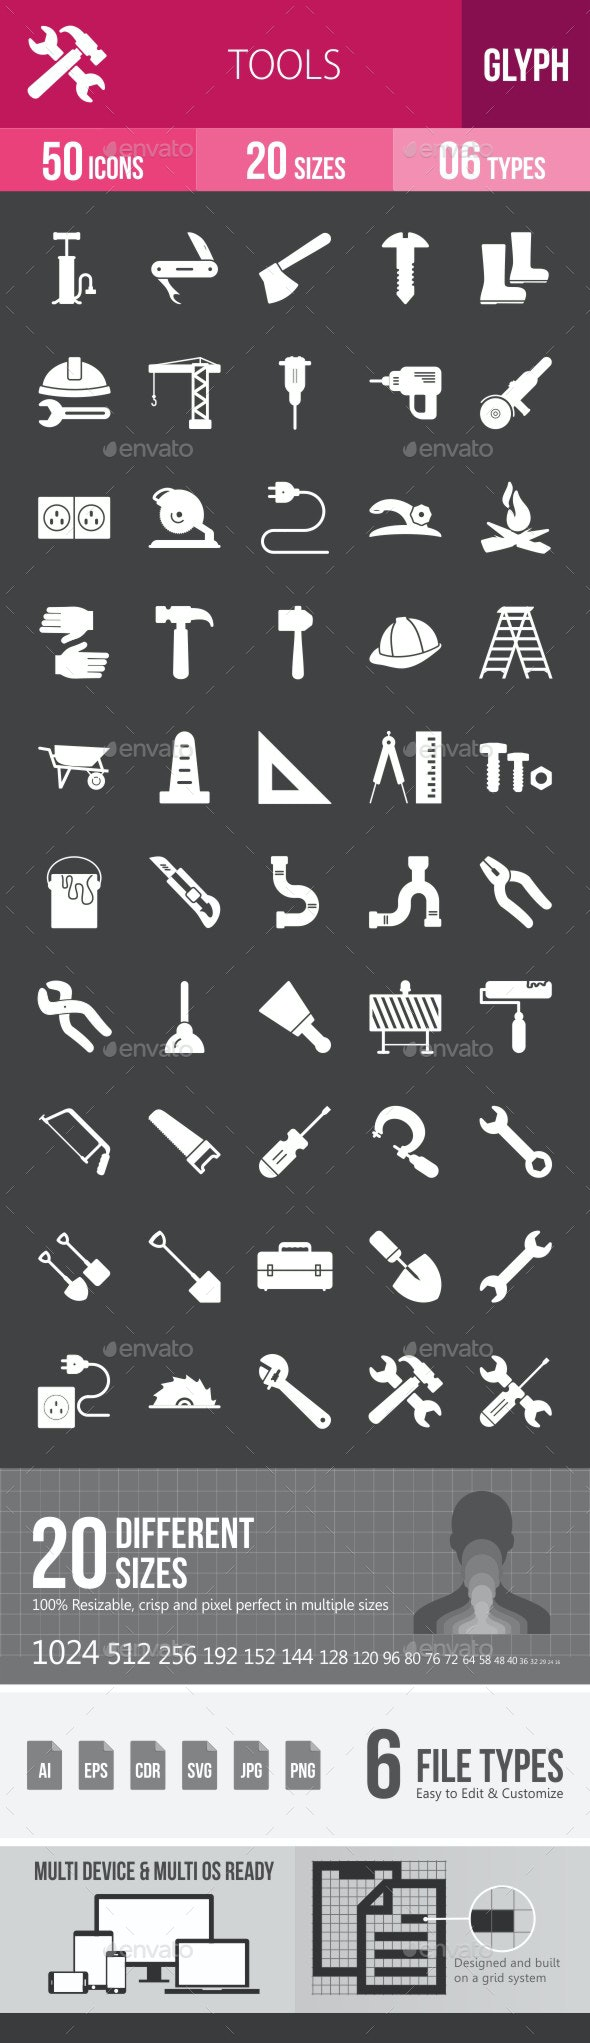 Tools Glyph Inverted Icons - Icons